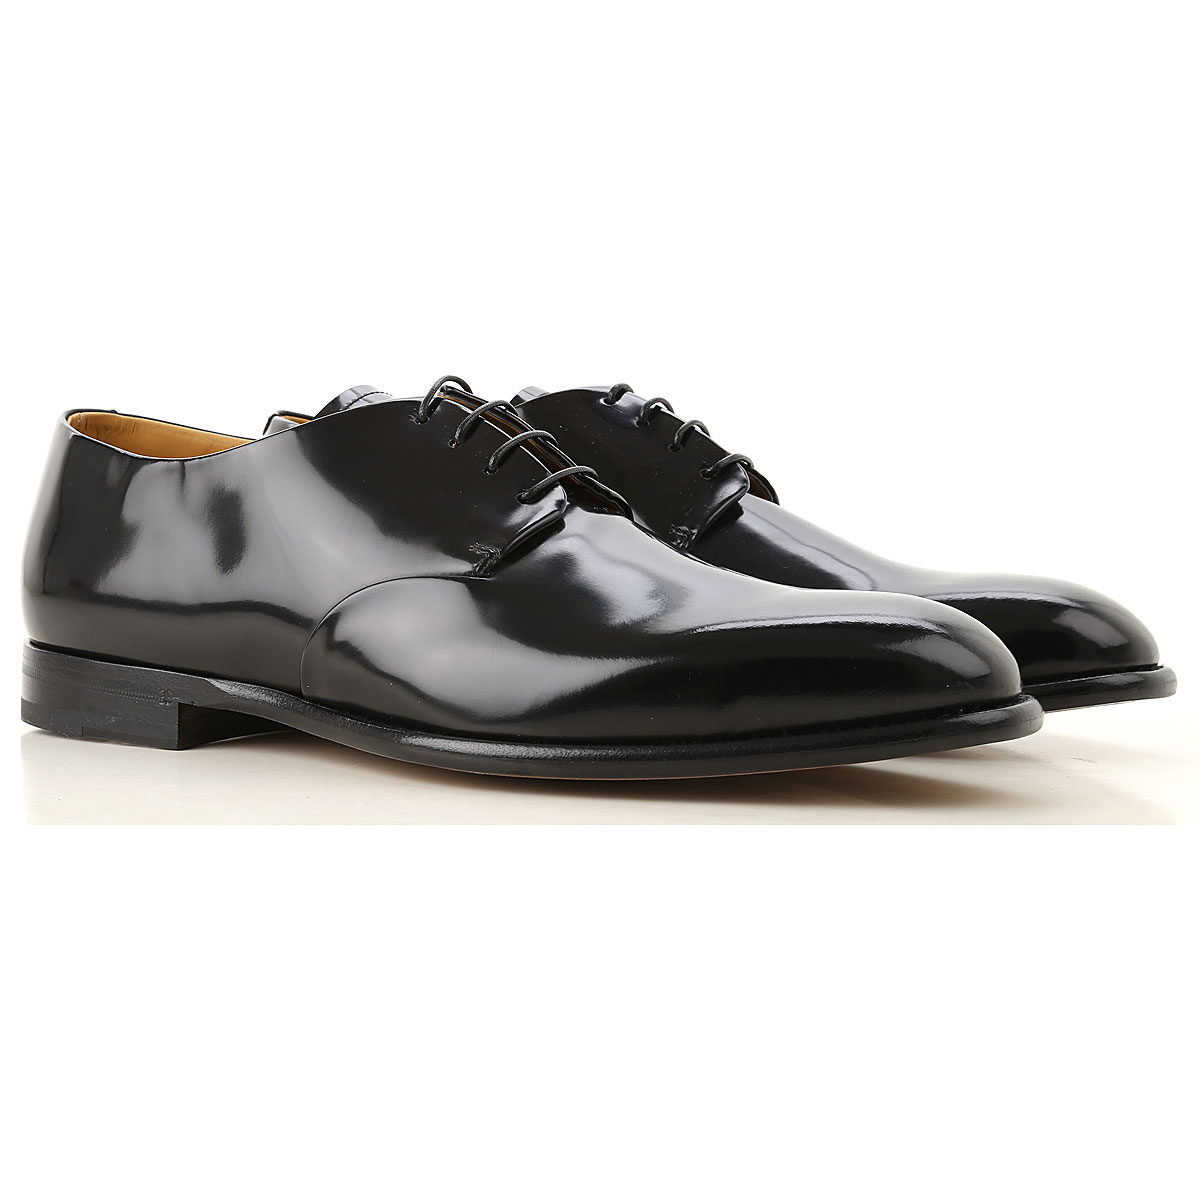 Fabi Lace Up Shoes for Men Oxfords Derbies and Brogues On Sale USA - GOOFASH